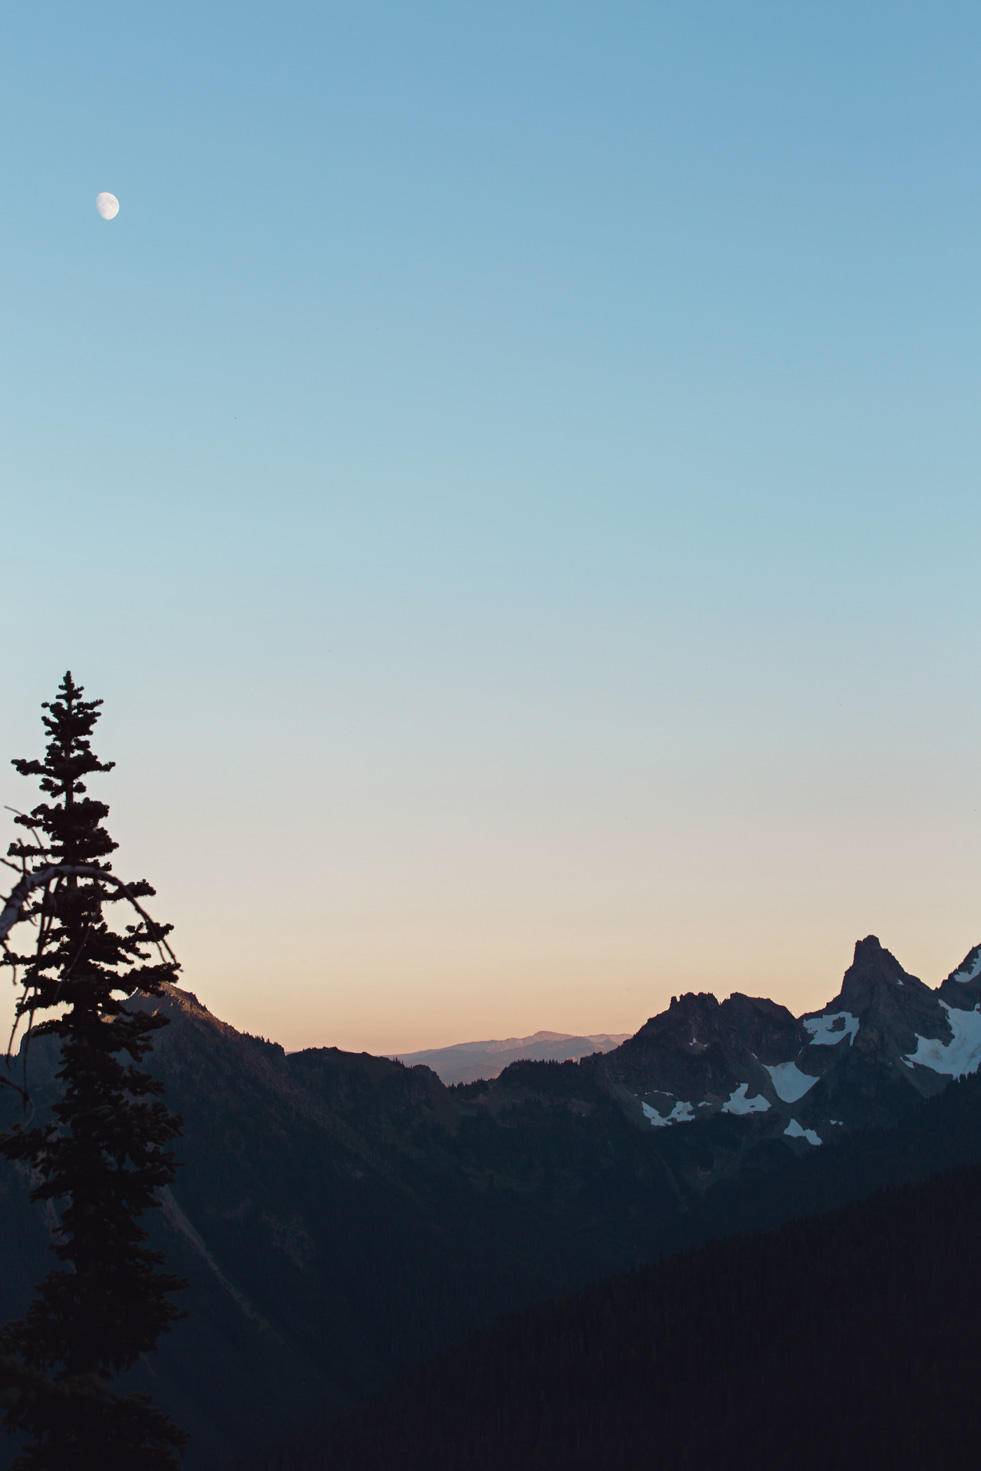 CindyGiovagnoli_Mount_Rainier_National_Park_Washington-030.jpg